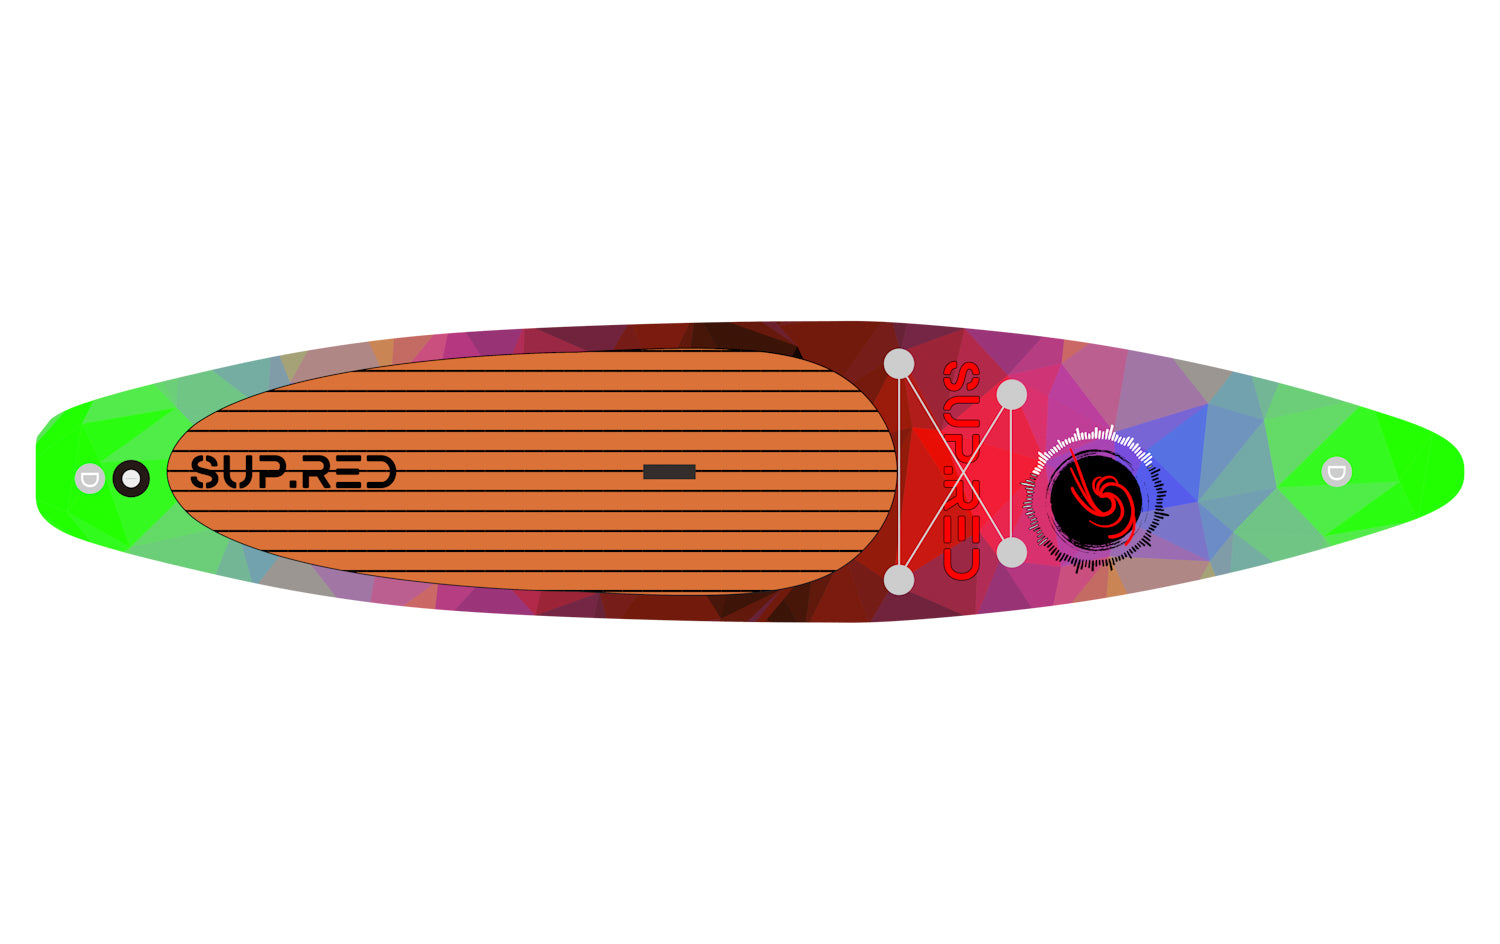 SUP.RED Paddleboard designed in NZ